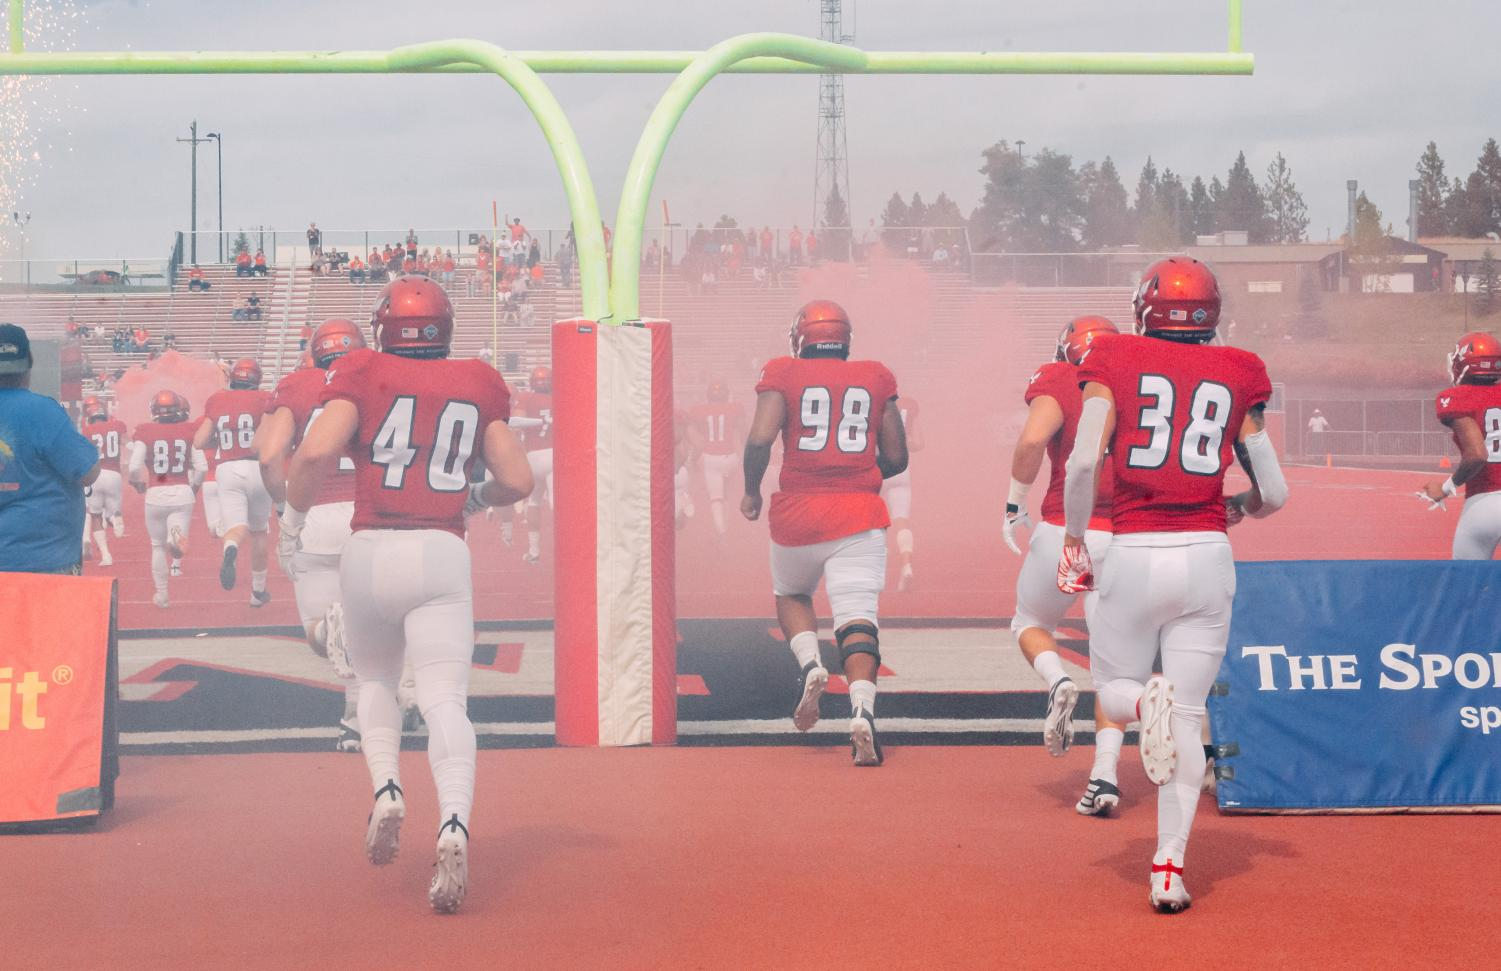 EWU takes the field for its home opener against Lindenwood on Sept. 7. EWU won the game 59-31.